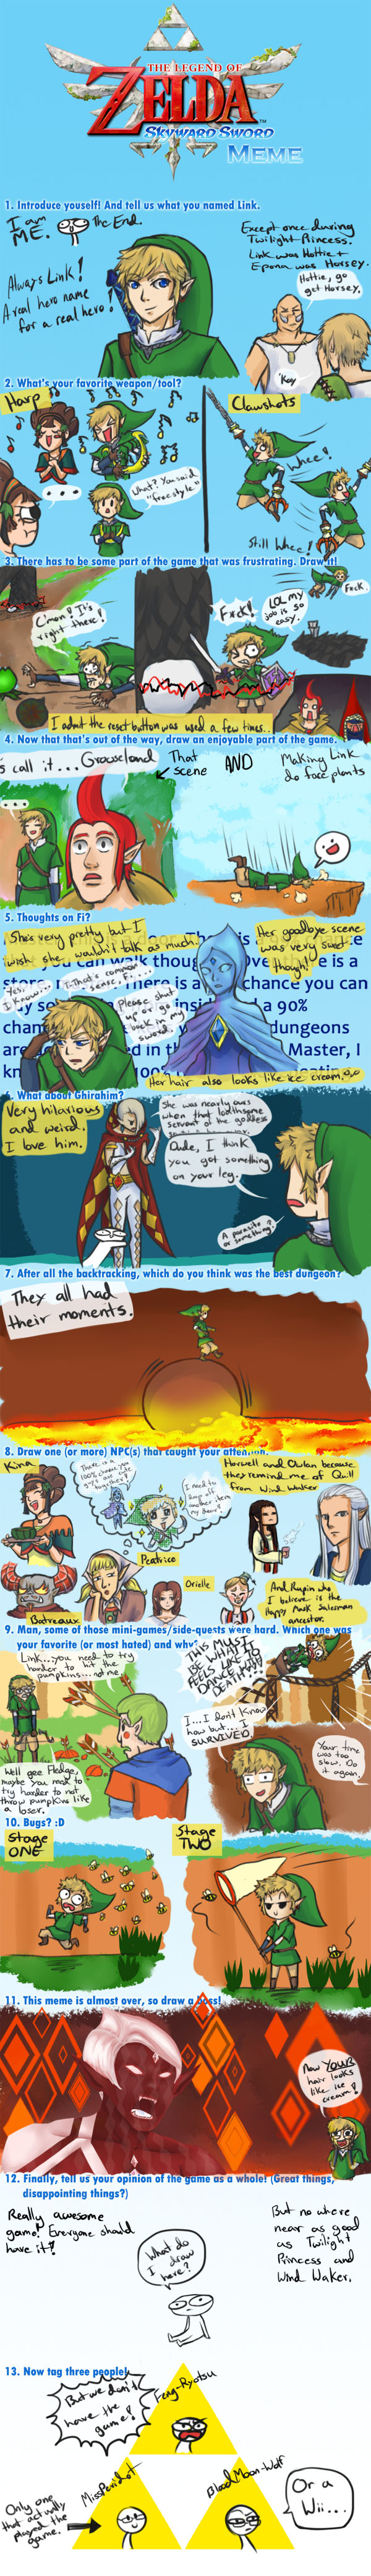 Skyward Sword Meme by GhostAlly